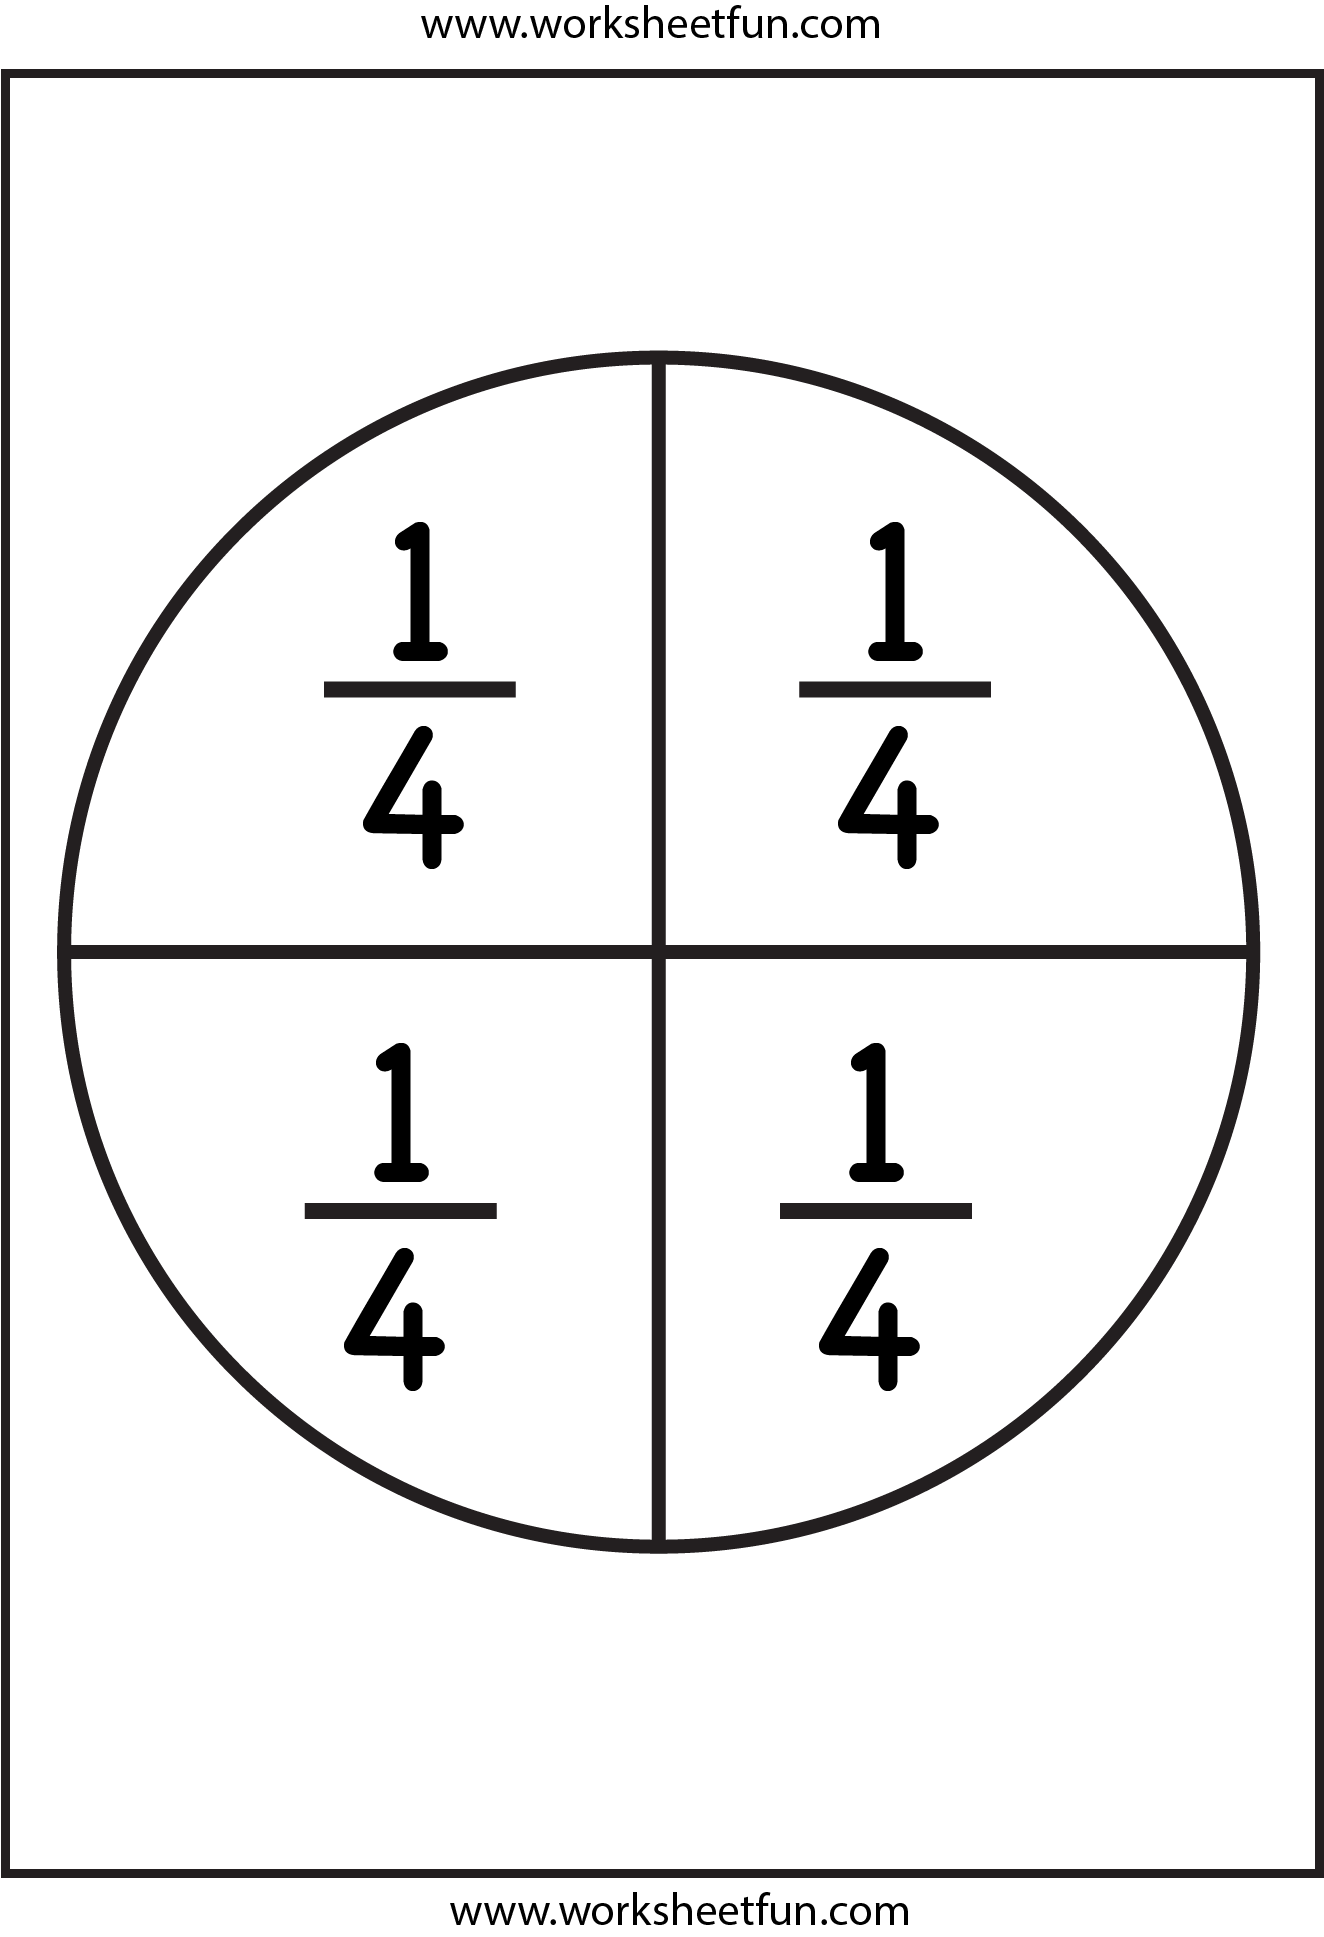 Enterprising image pertaining to printable fraction circles